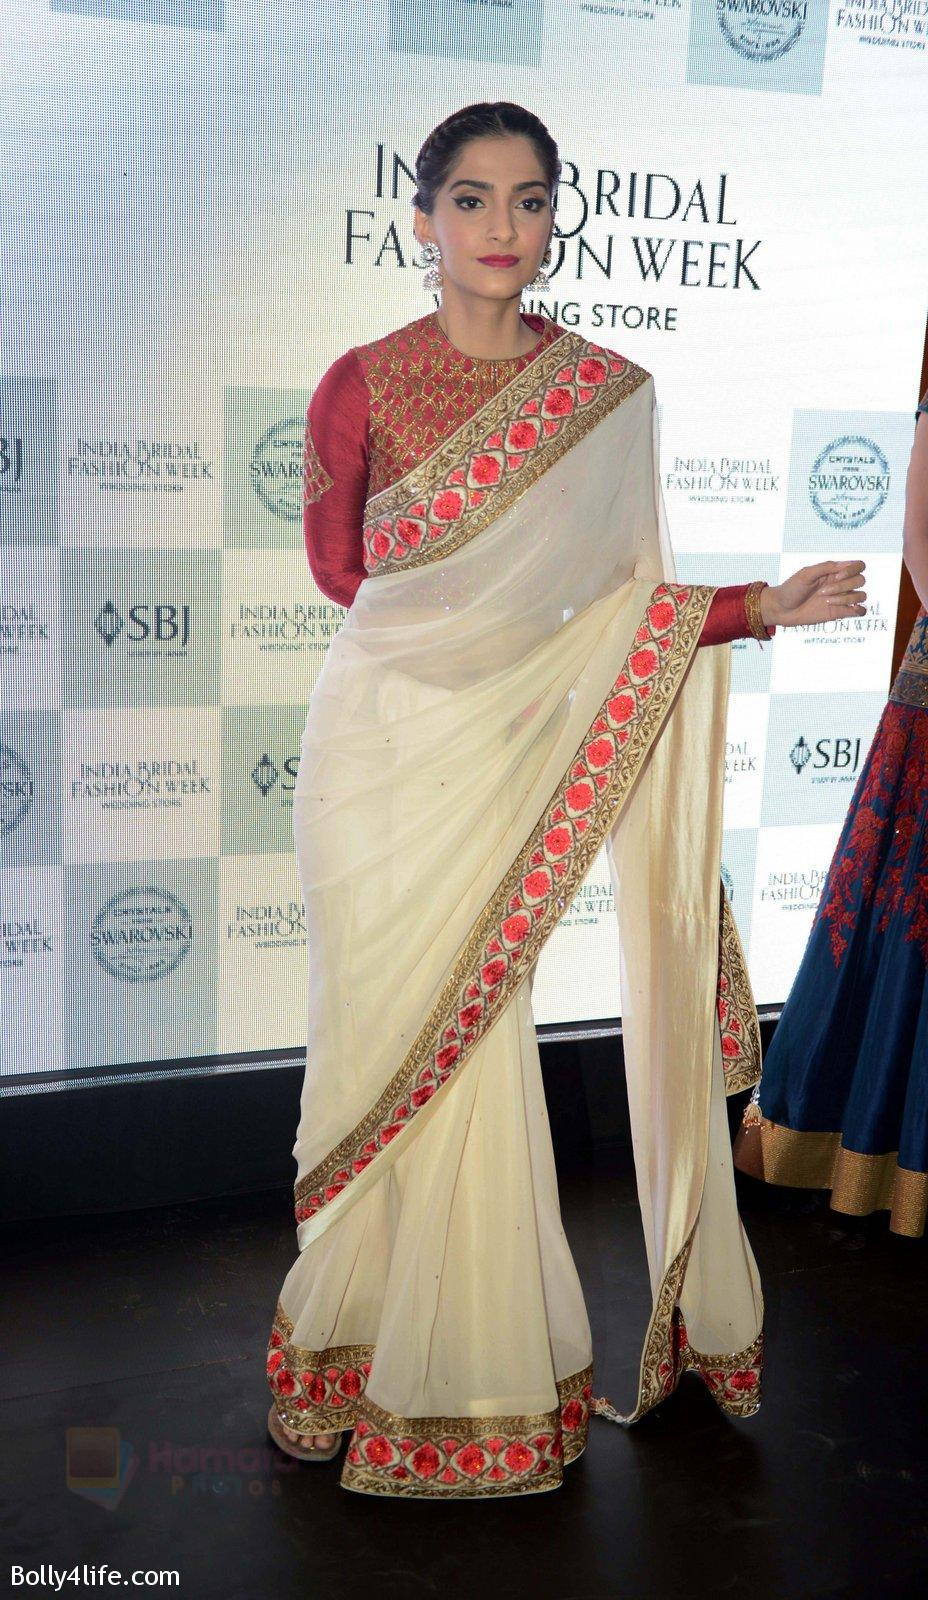 Sonam-Kapoor-during-the-launch-of-the-first-Indian-Bridal-Fashion-Week-Wedding-Store-in-New-Delhi-on-9th-Sept-2016-23.jpg